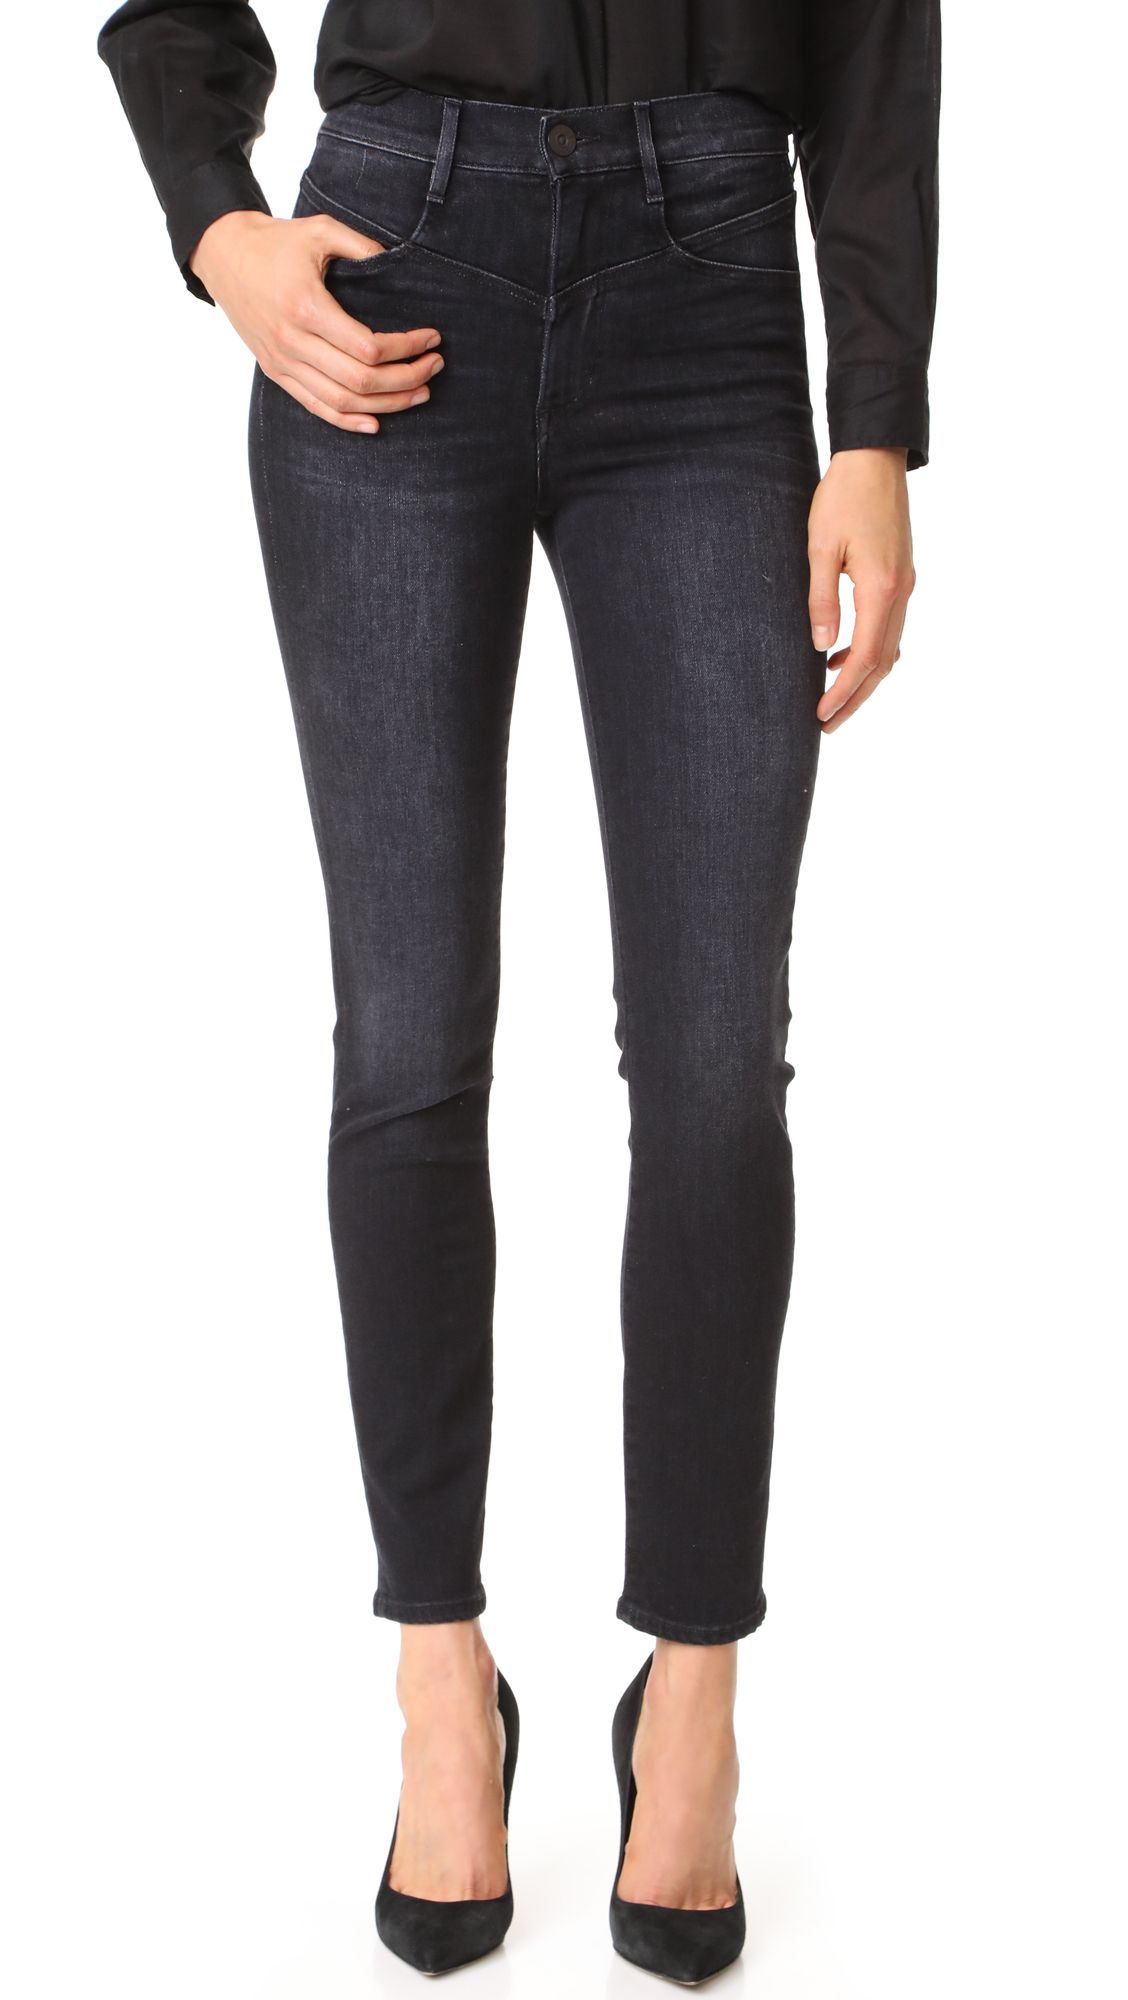 5 Issues Everyone Has With Skinny Jeans (and How to Fix Them) 3